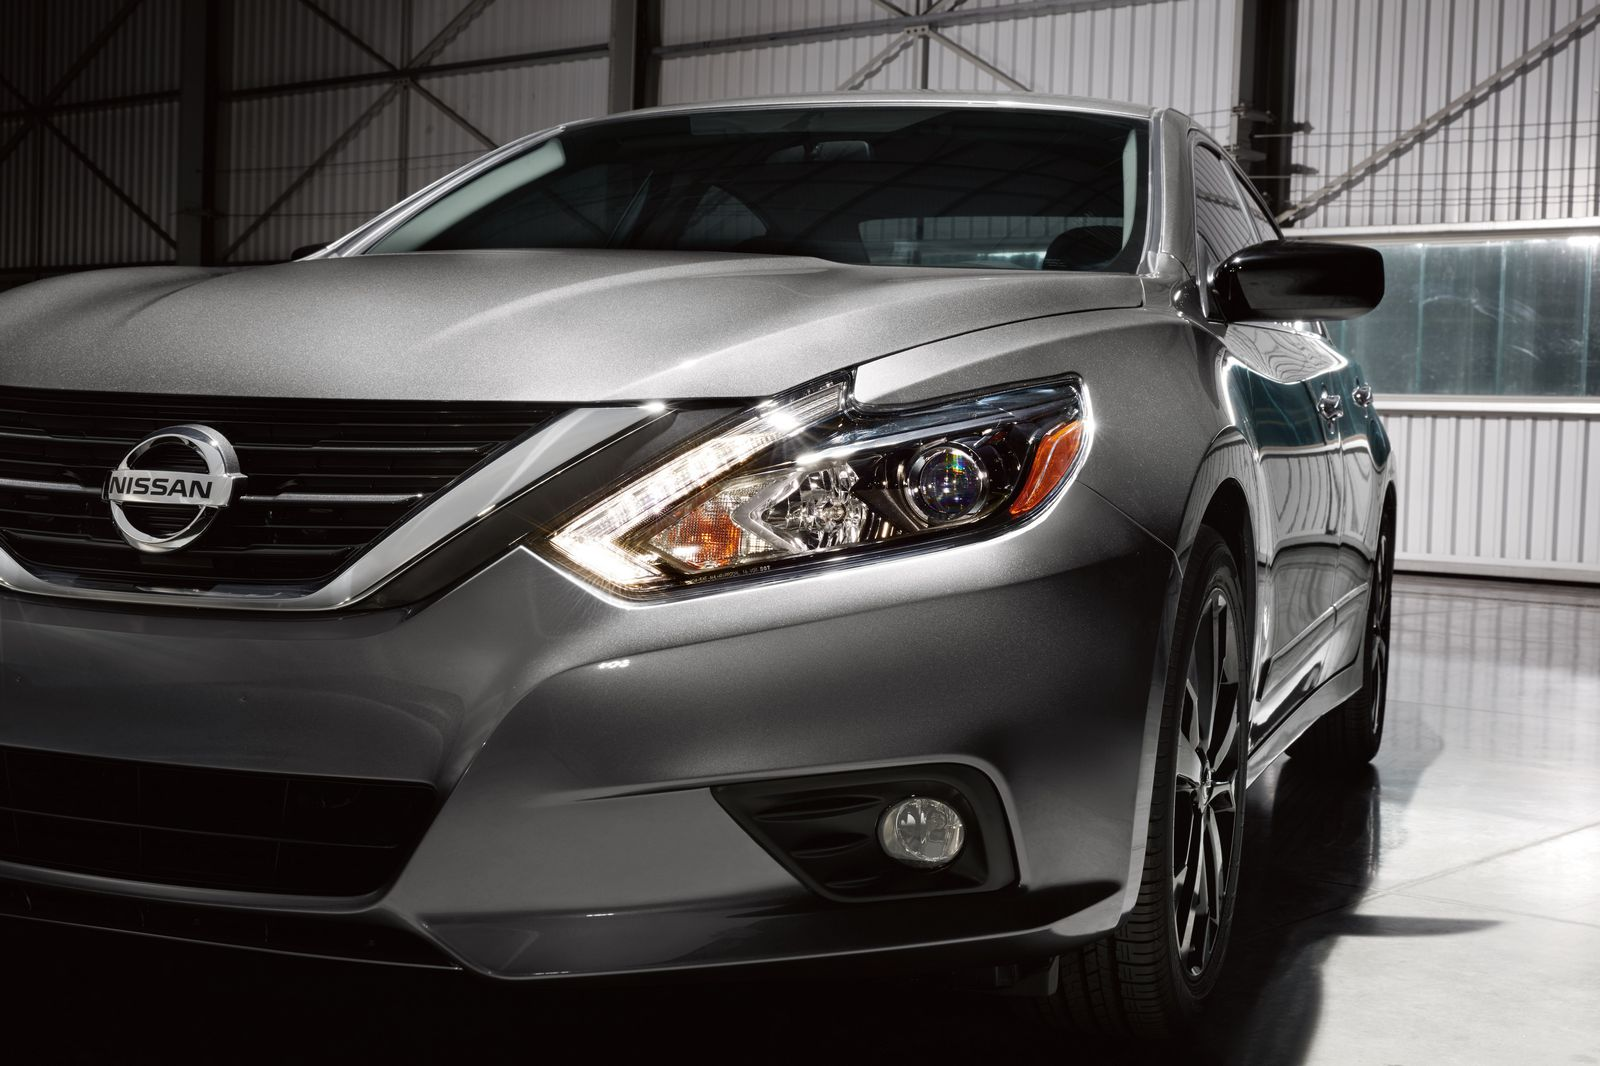 Available on the 2017 Altima 2.5SR, the Altima SR Midnight Edition features black 18-inch Midnight Edition aluminum-alloy wheels and low-profile 235/45R18 all-season tires, black mirror caps, black rear spoiler, LED headlights, remote engine start and available Midnight Edition floor mats. The package has an MSRP1 of $990 USD and is on sale now.